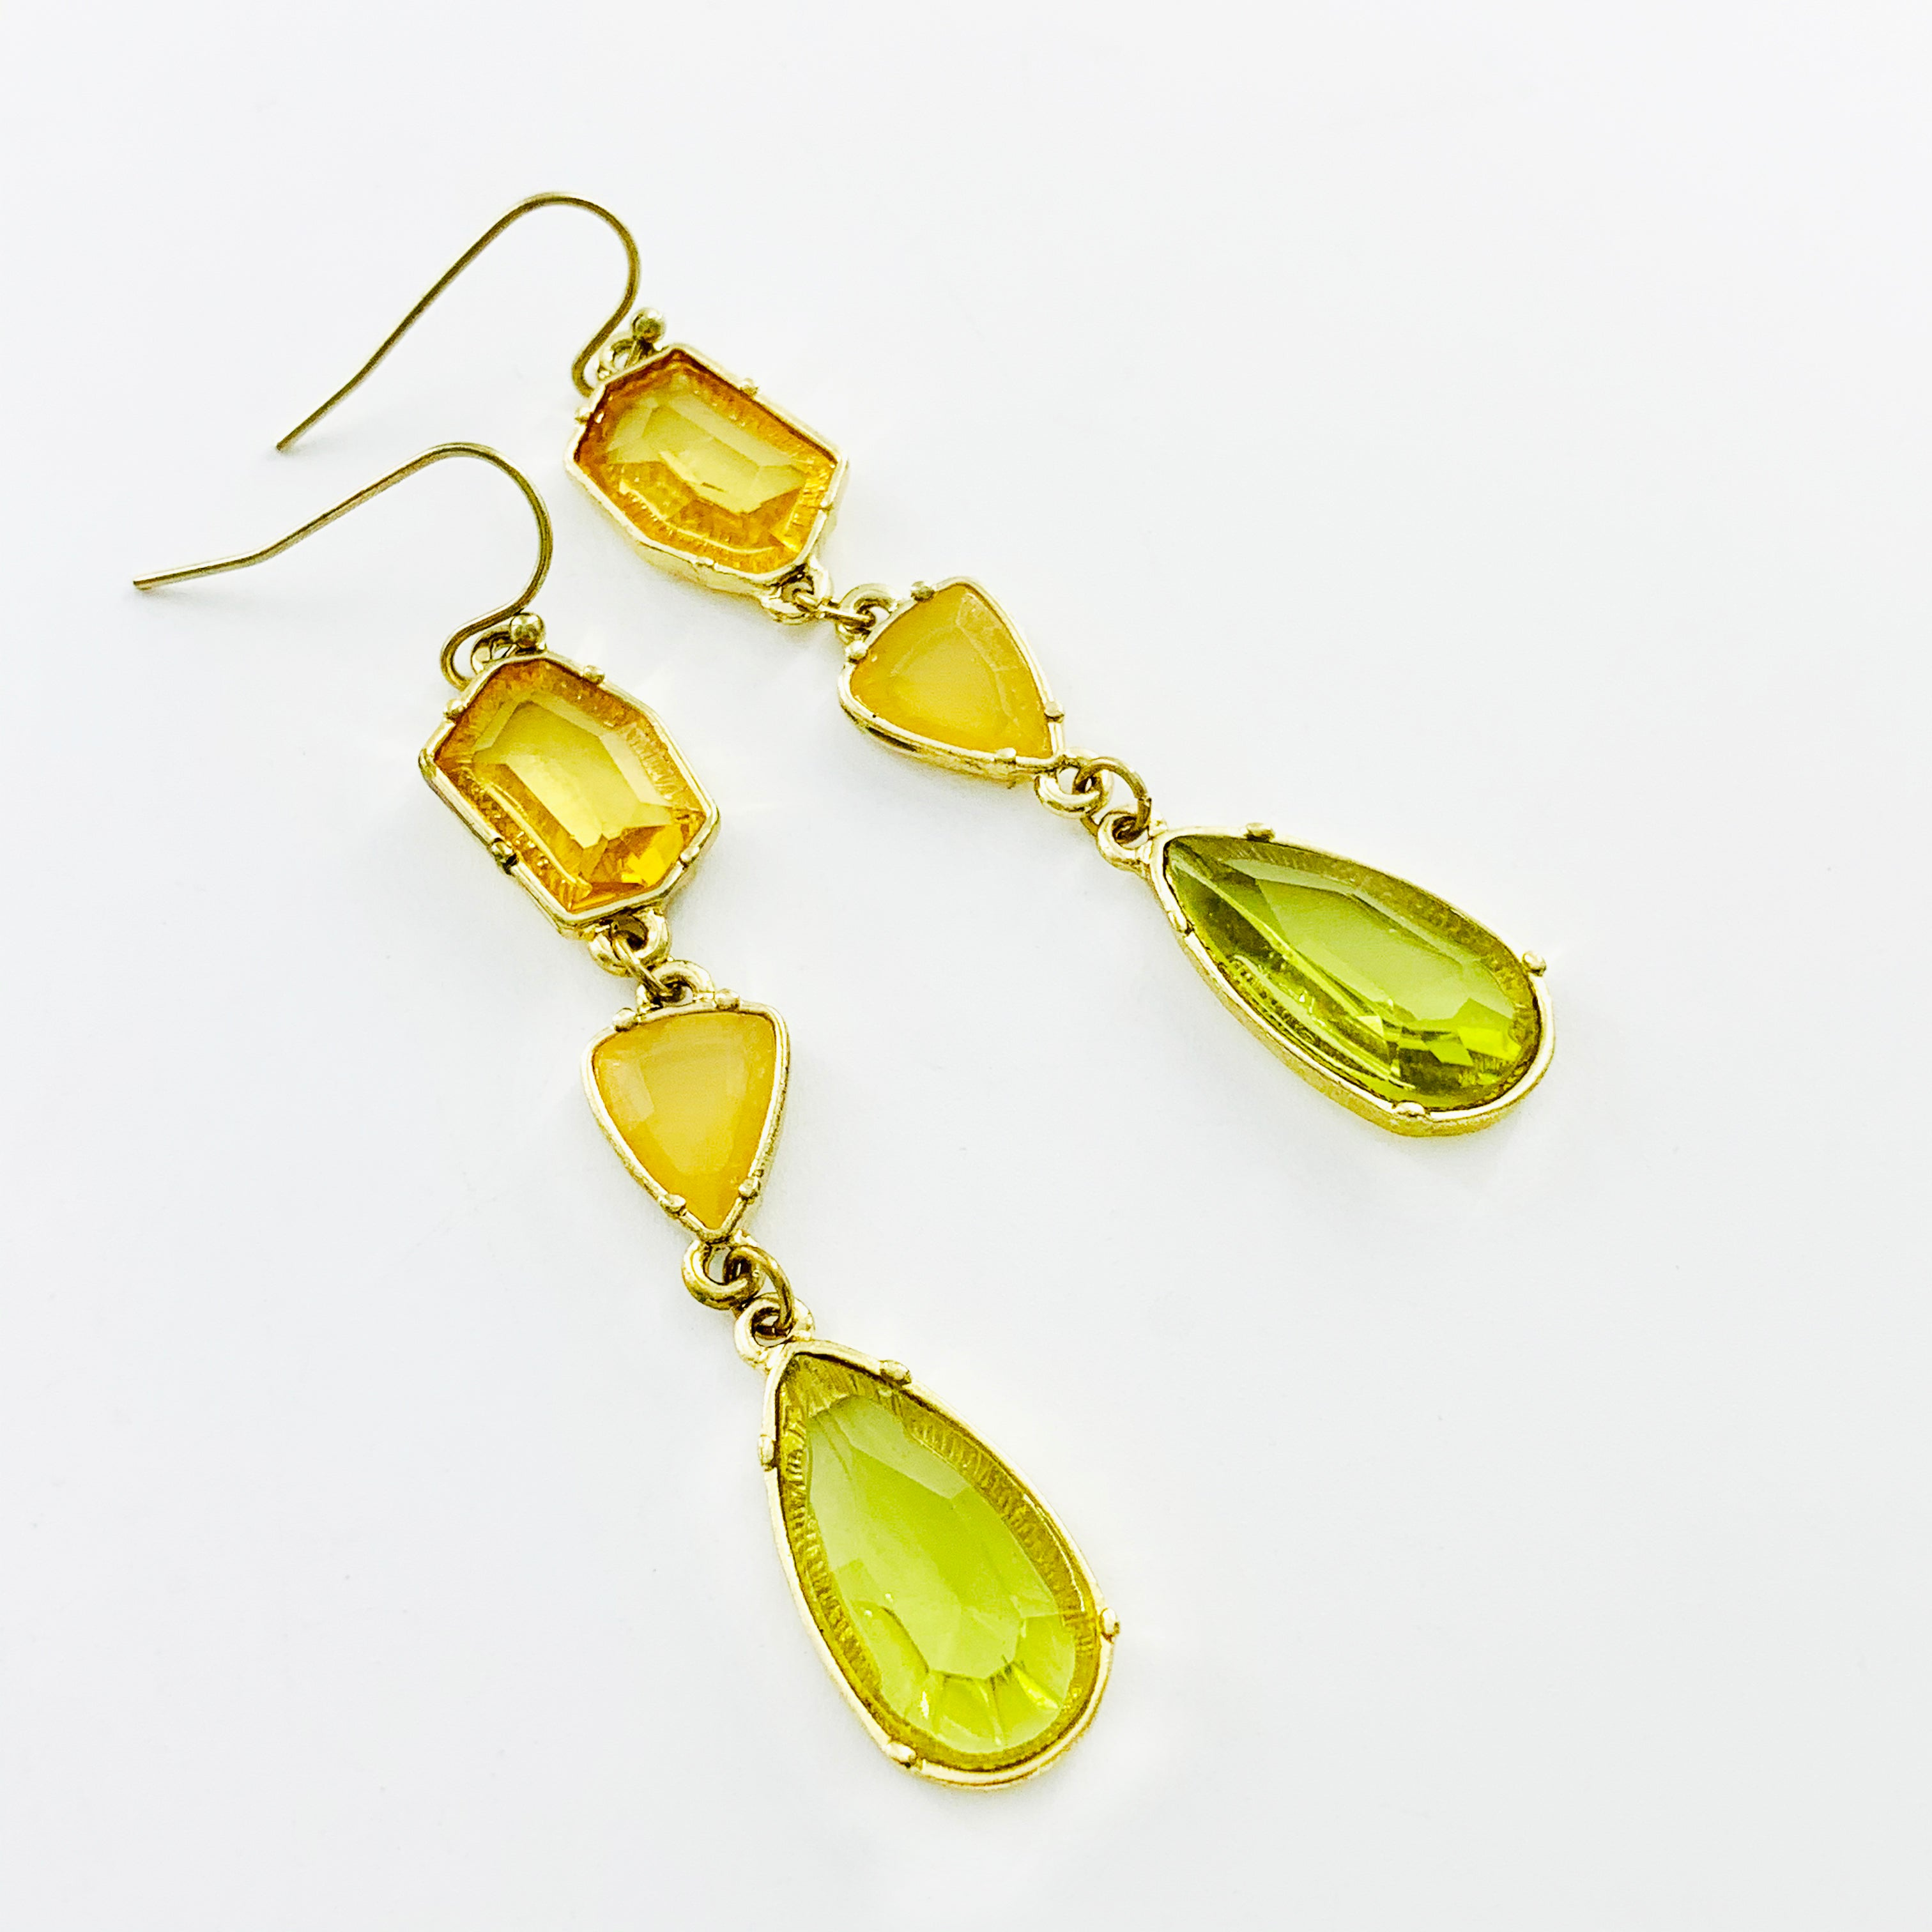 Dangling yellow and green stone earrings